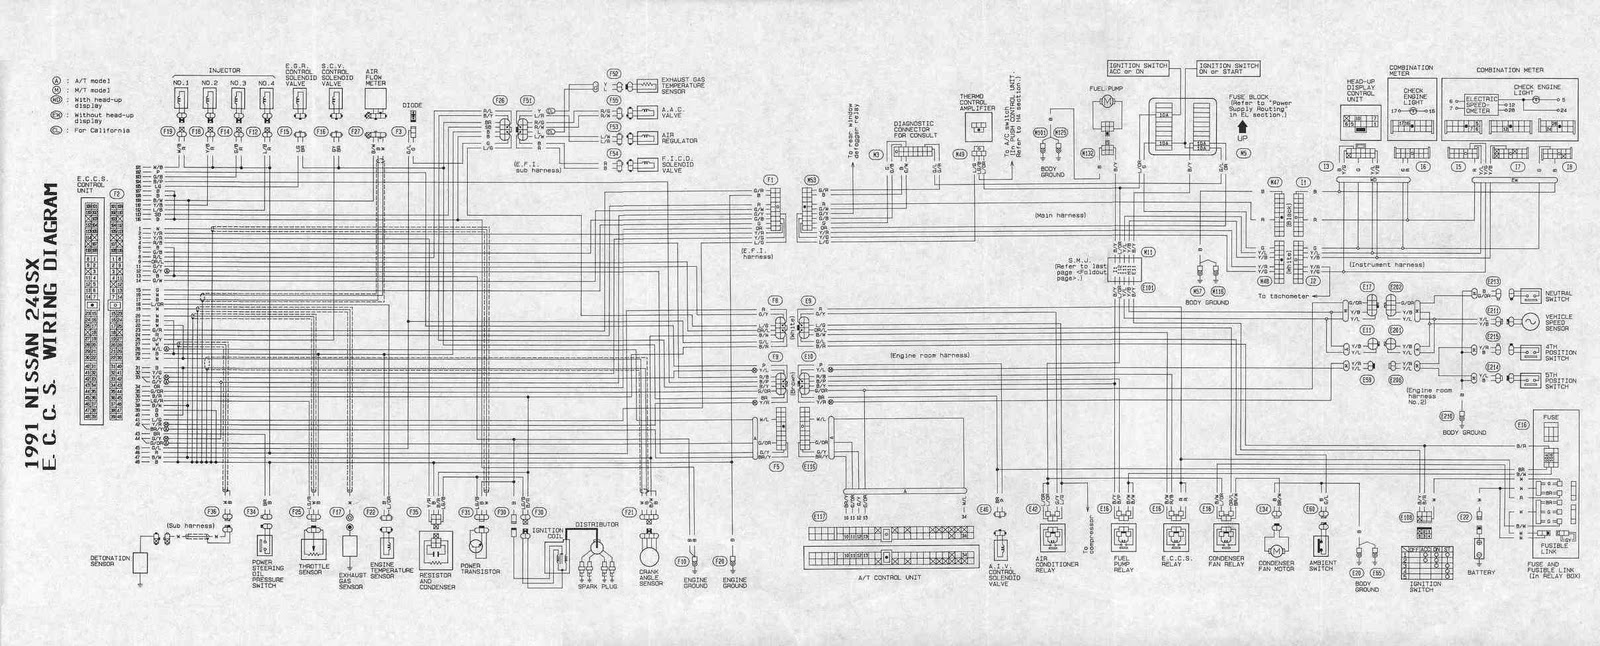 93 240sx wiring diagram wiring diagram source 91 mr2 wiring diagram 240sx wiring diagrams wiring diagram [ 1600 x 646 Pixel ]